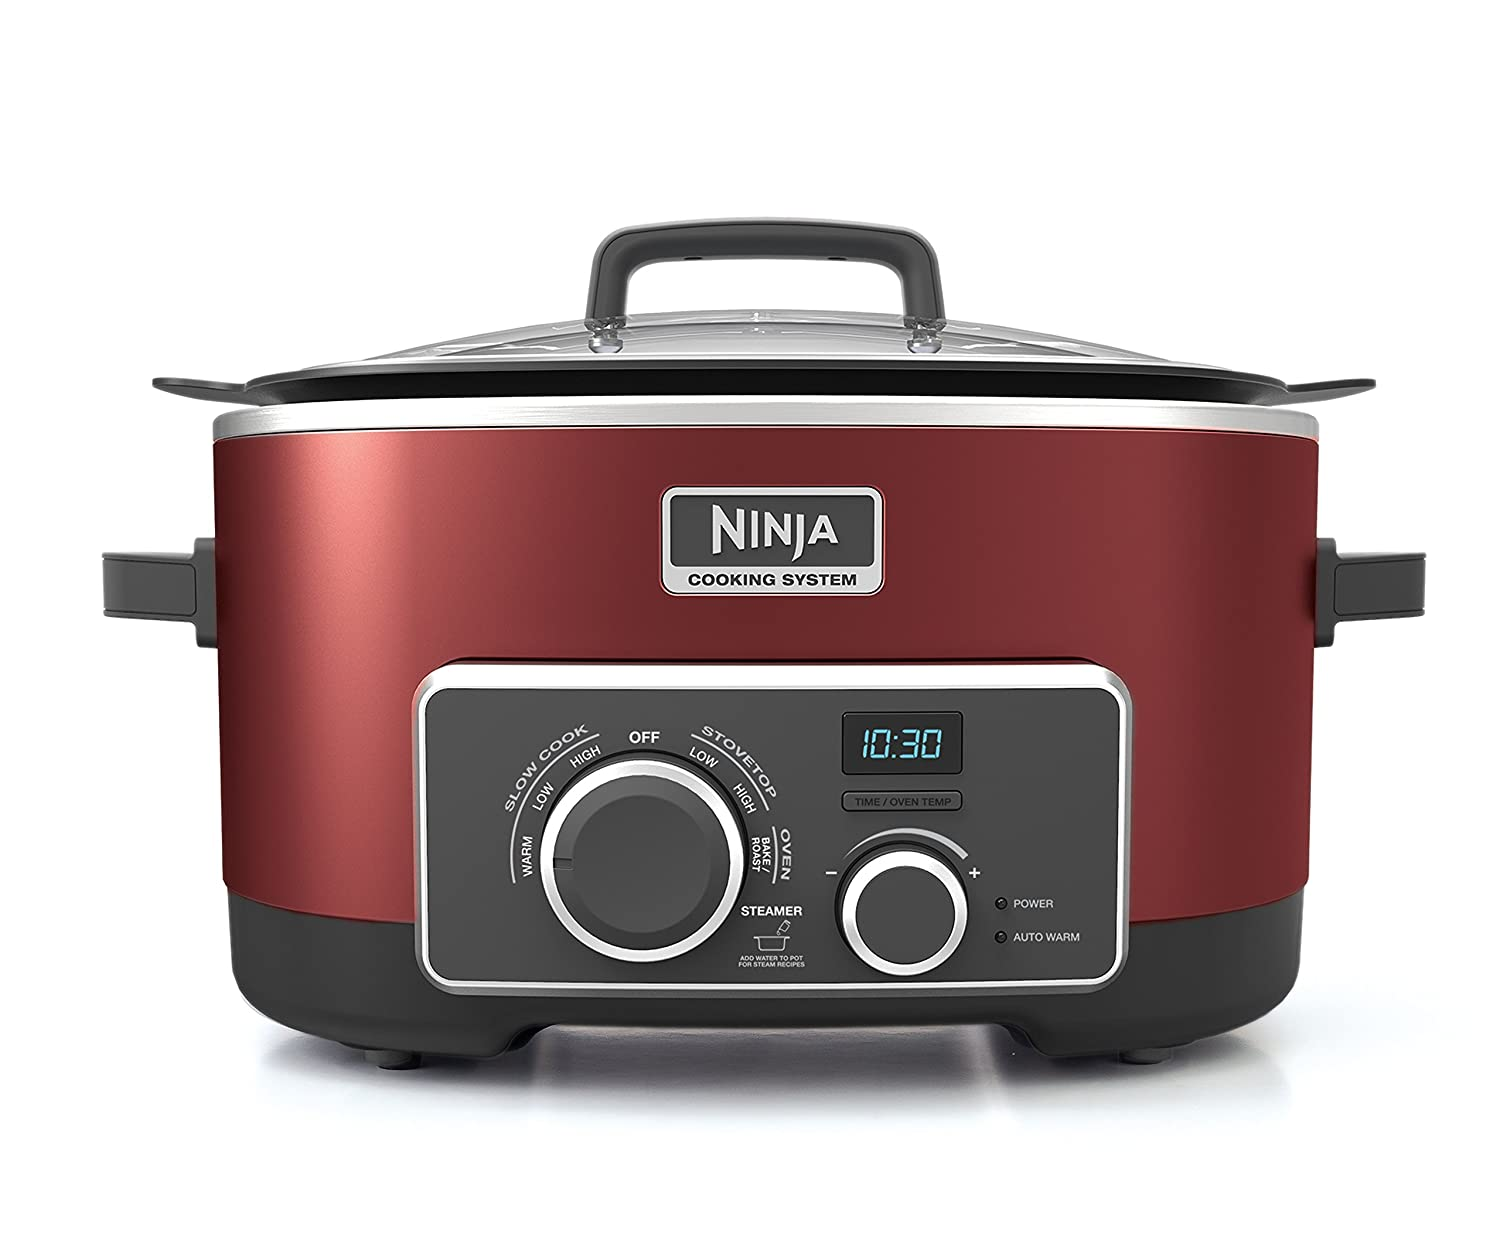 Ninja Multi-Cooker with 4-in-1 Stove Top, Oven, Steam and Slow Cooker Options, 6-Quart Nonstick Pot, and Steaming/Roasting Rack(MC950ZCN), Red